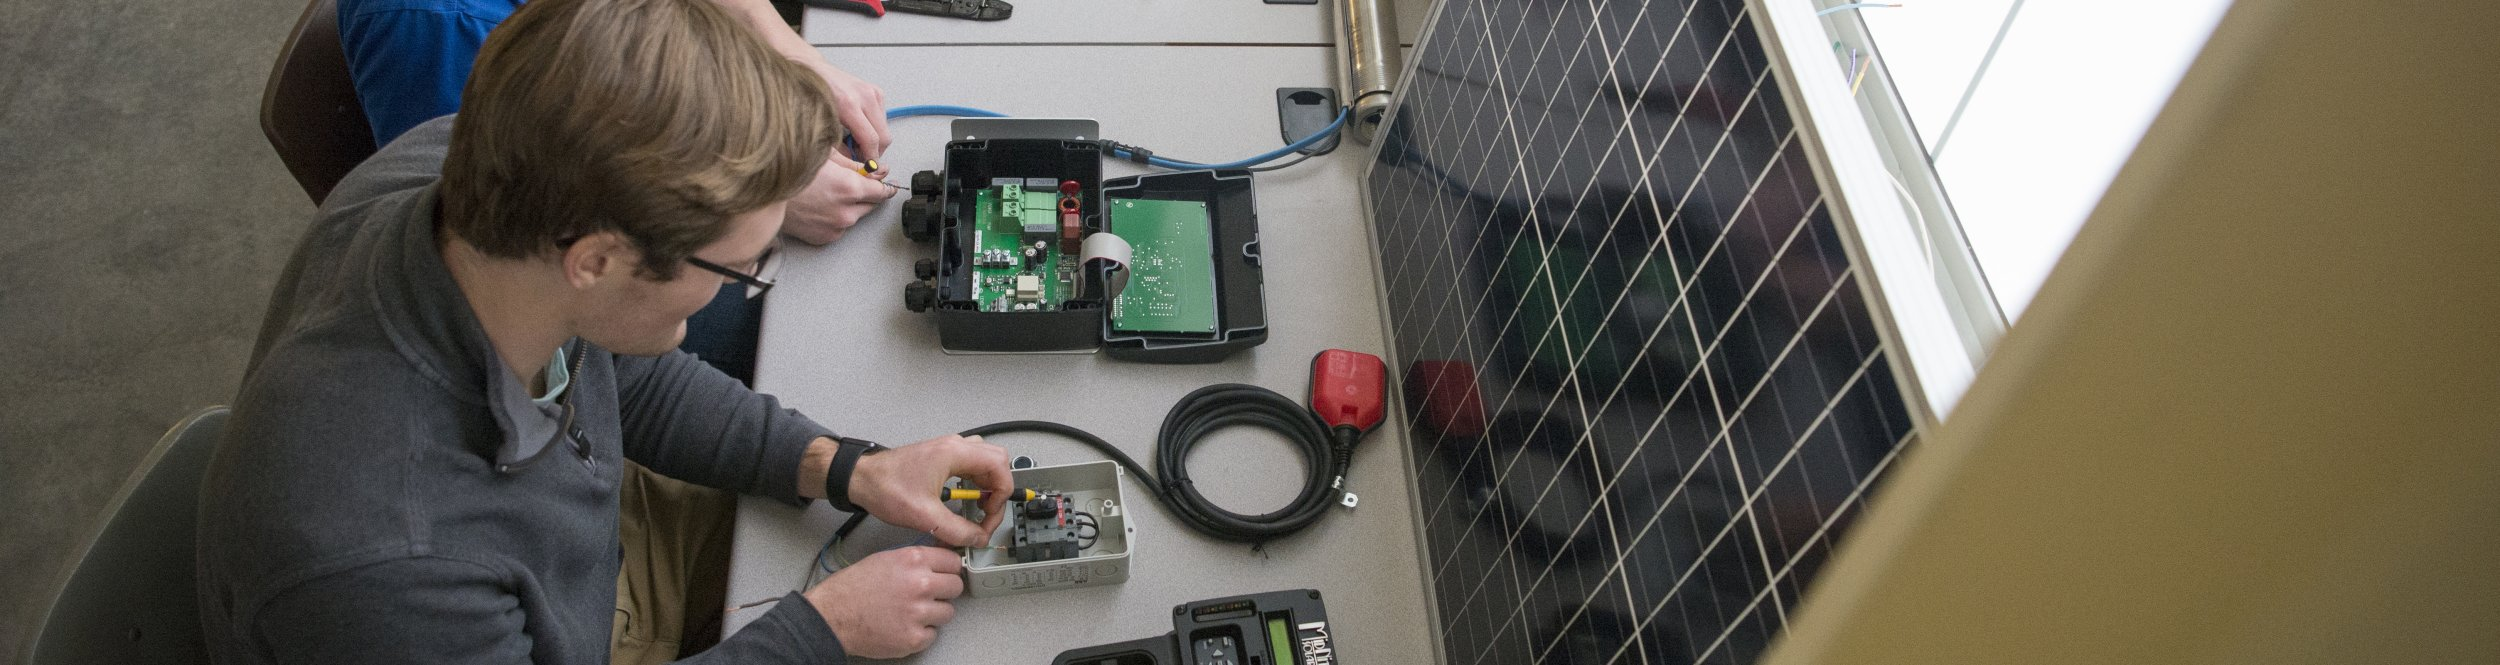 An engineering student works with a small device.